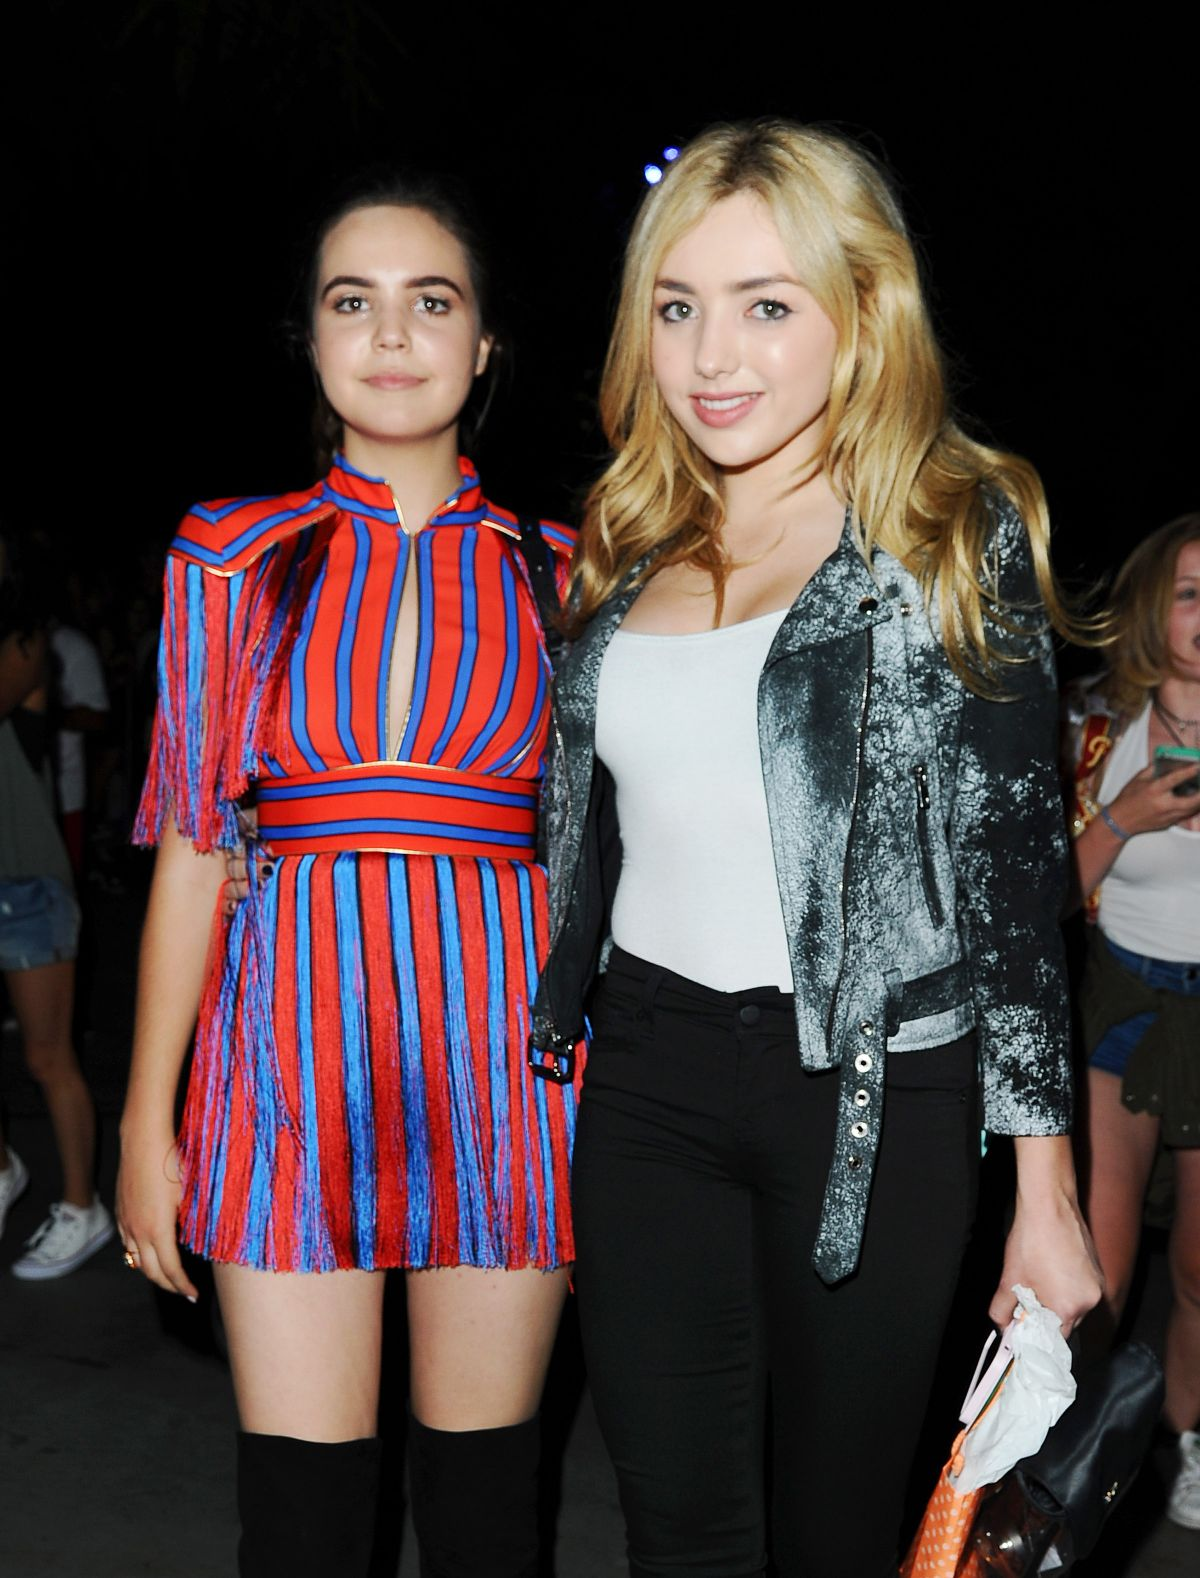 PEYTON LIST and BAILEE MADISON at Selena Gomez Concert in Los Angeles 07/08/2016